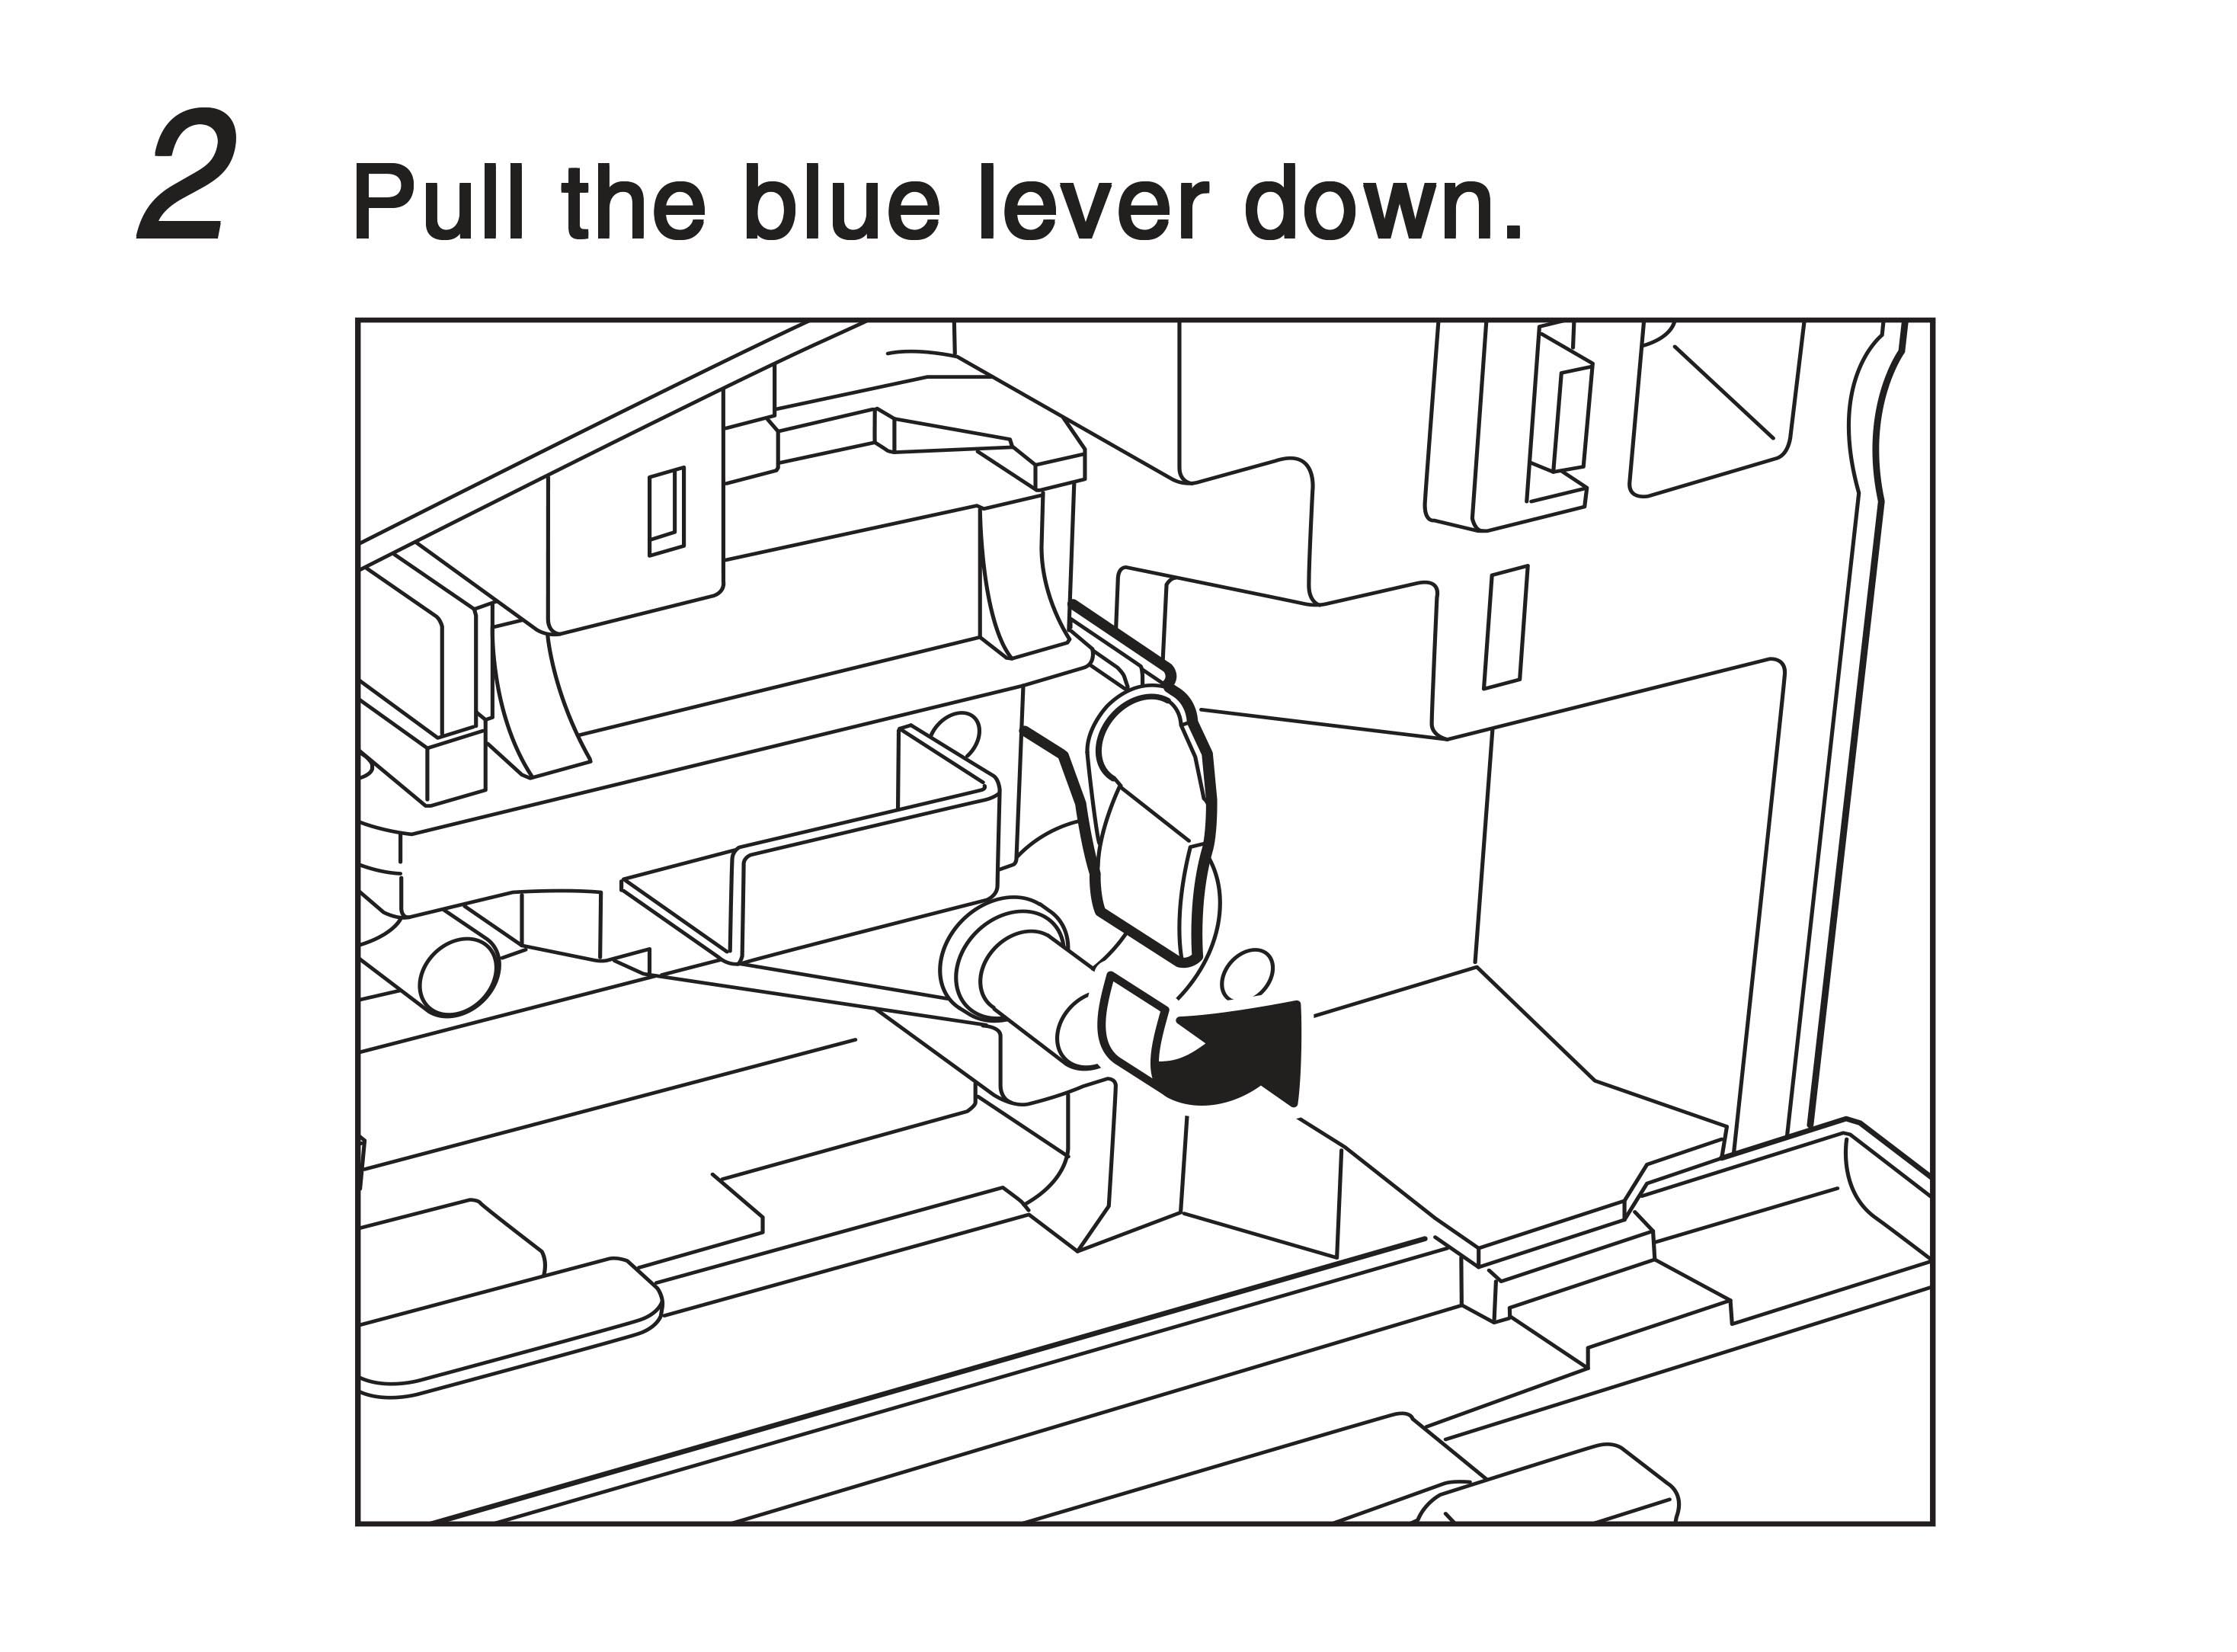 2. Pull the blue lever down.